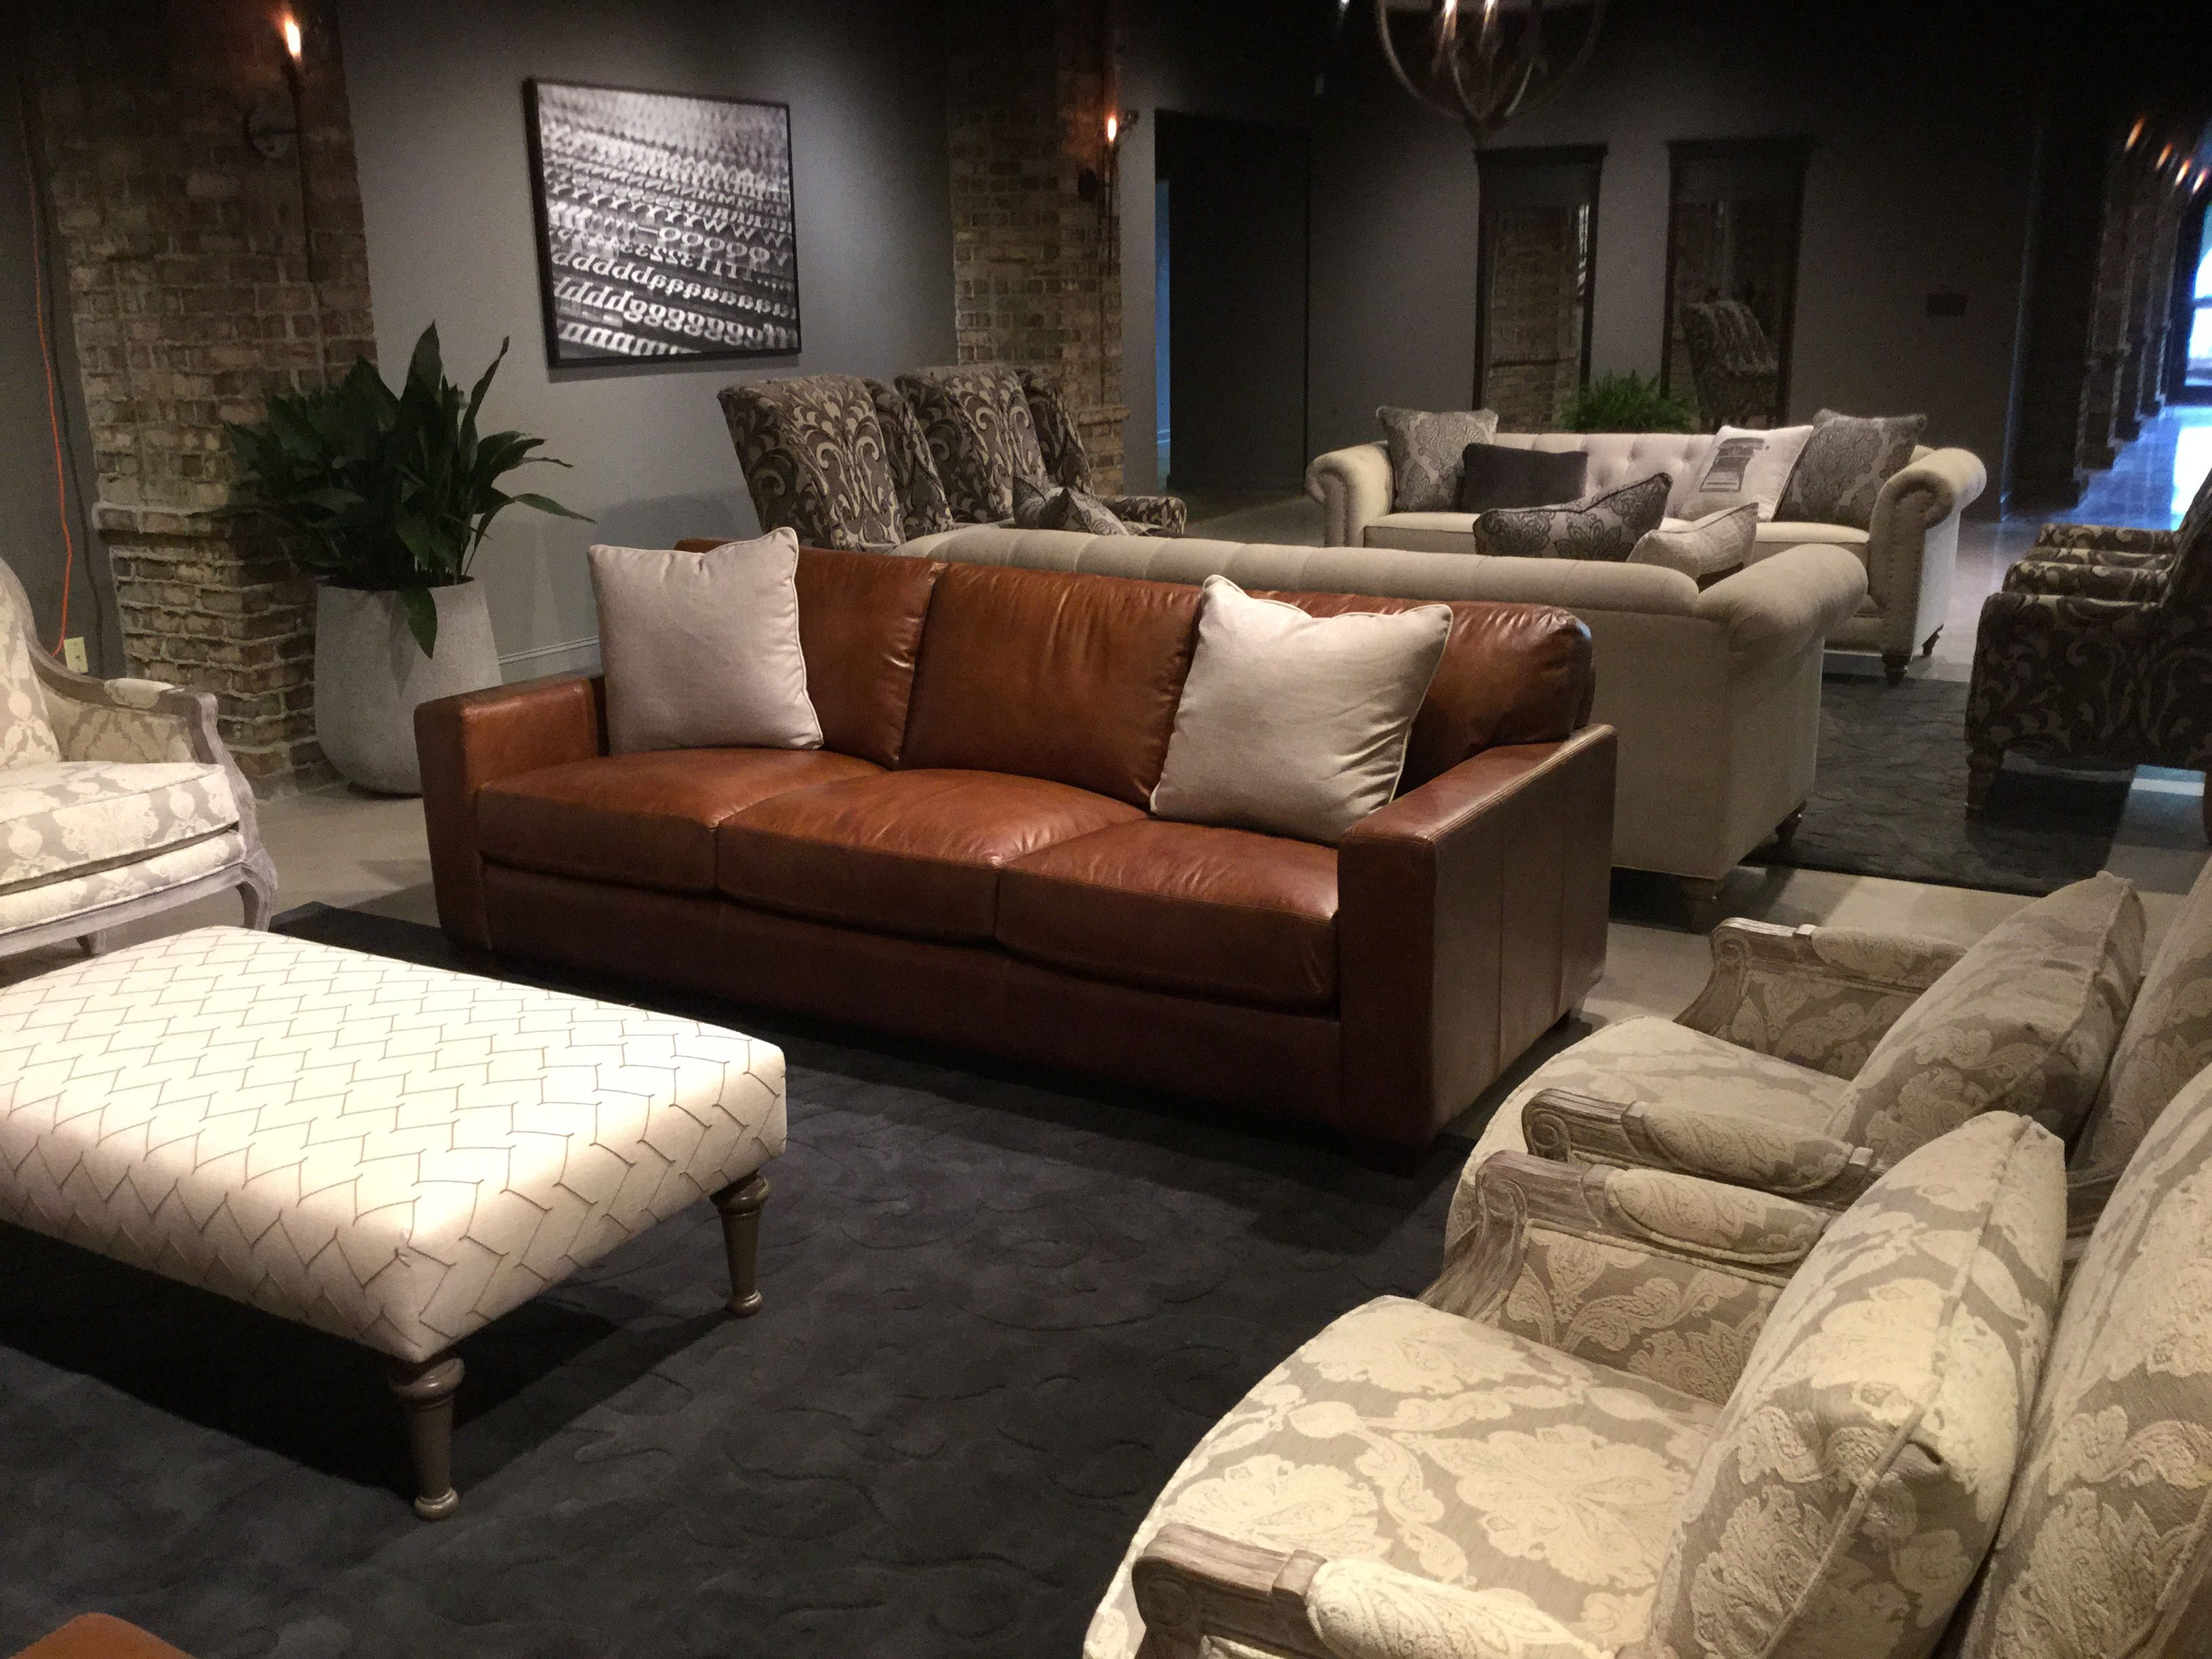 Encore Leather Sofacraftmaster Furniture | Sofas | Pinterest Intended For Gina Grey Leather Sofa Chairs (Photo 24 of 25)